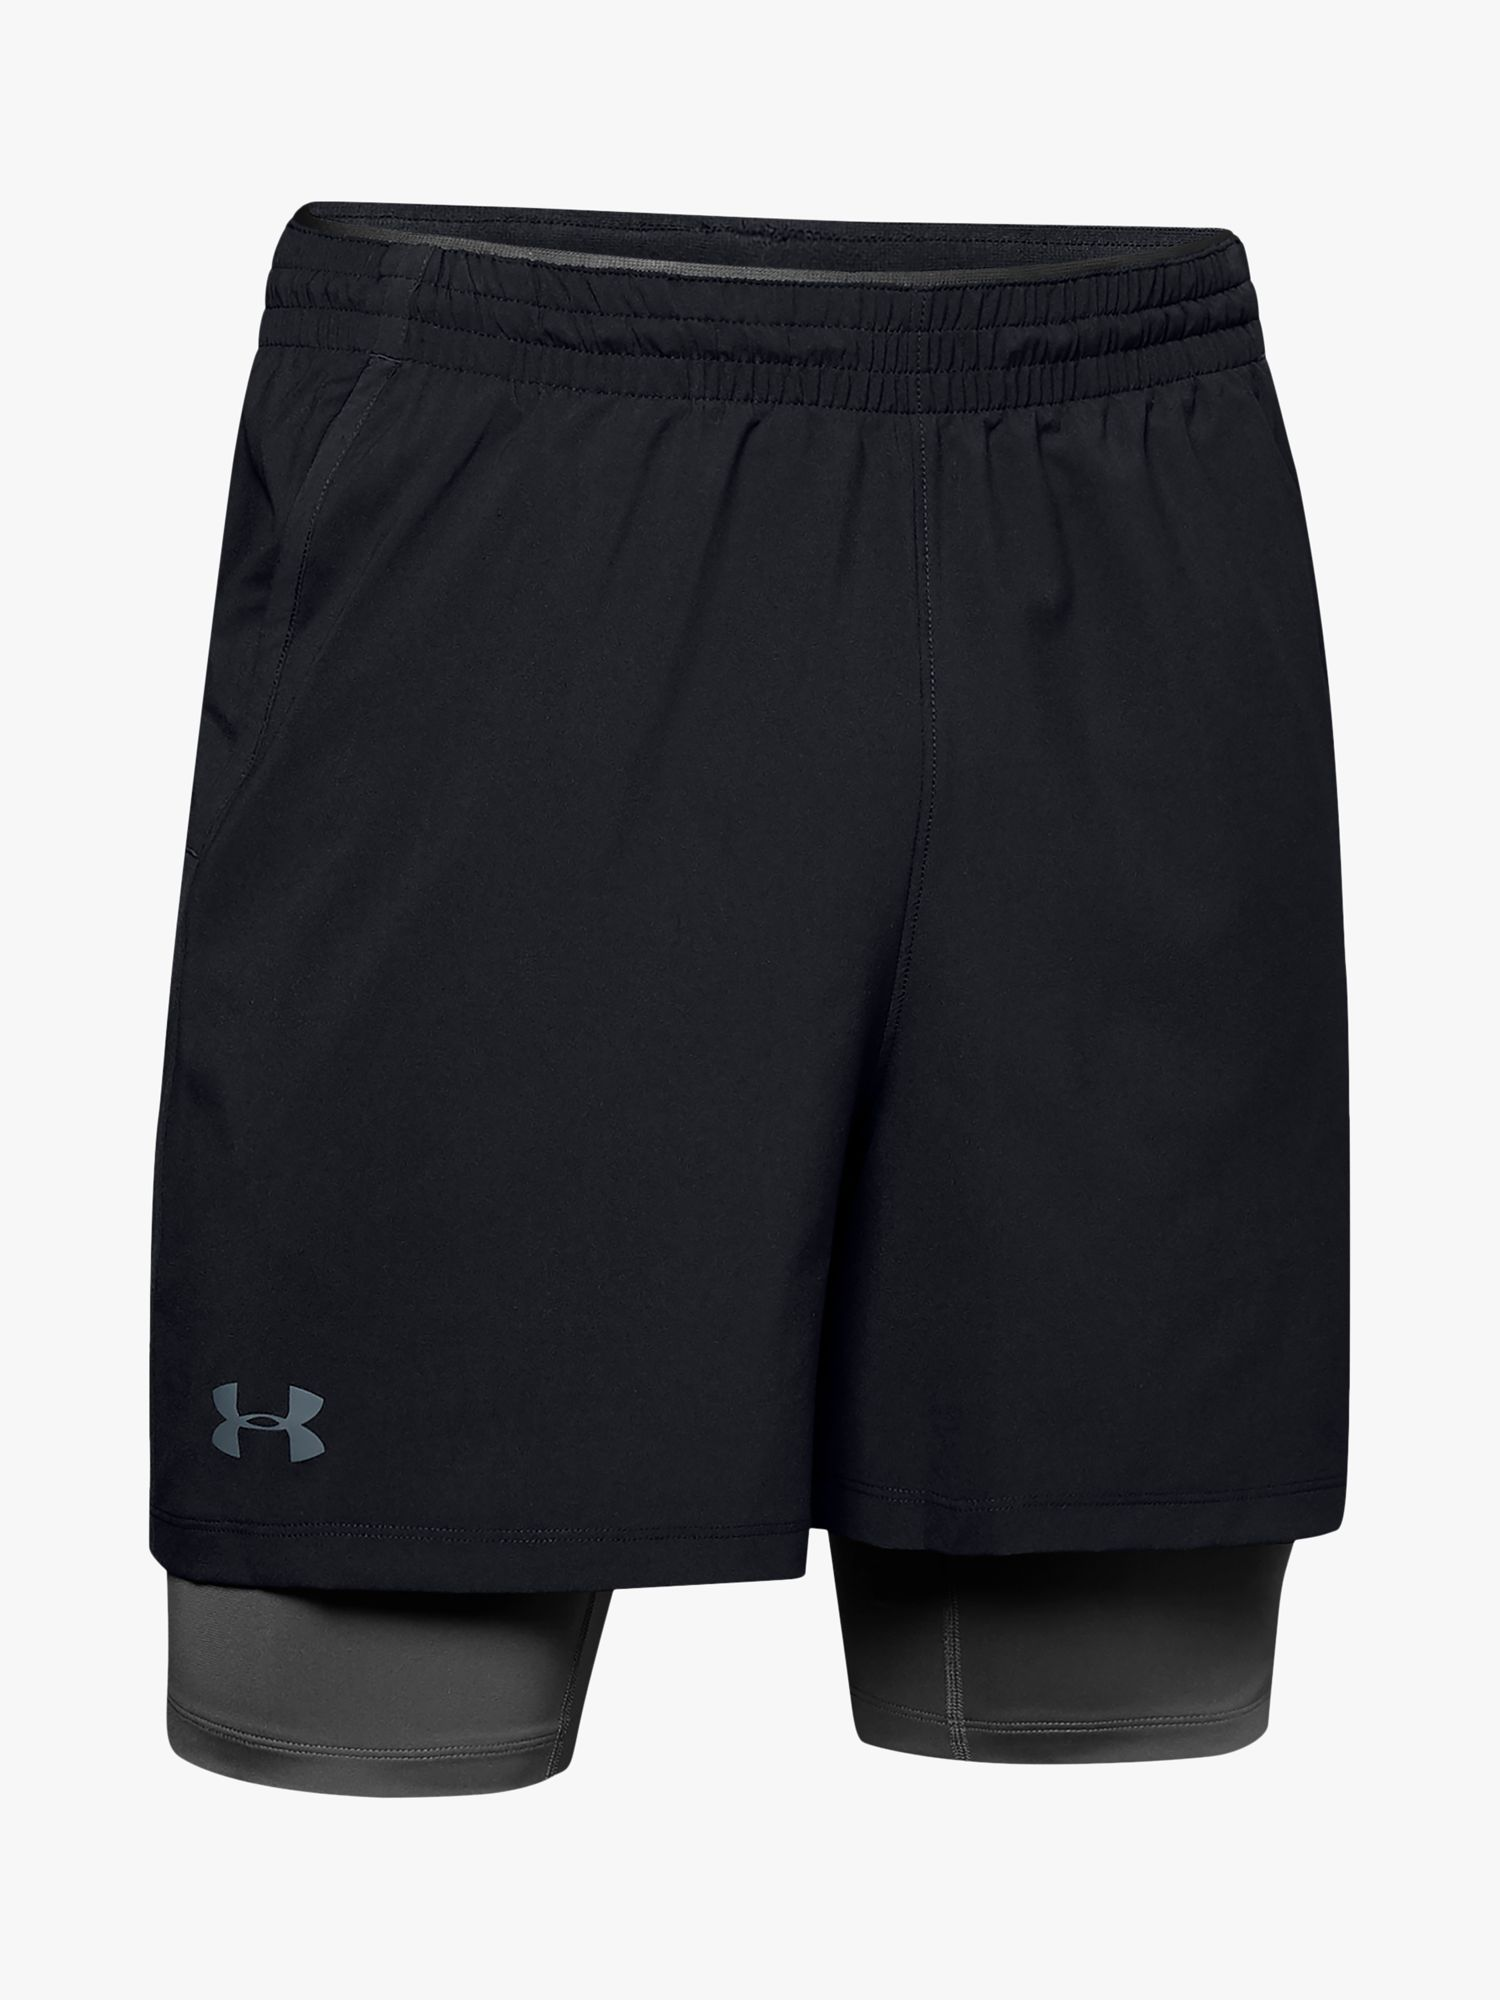 Under Armour Qualifier 2-in-1 Training Shorts, Black